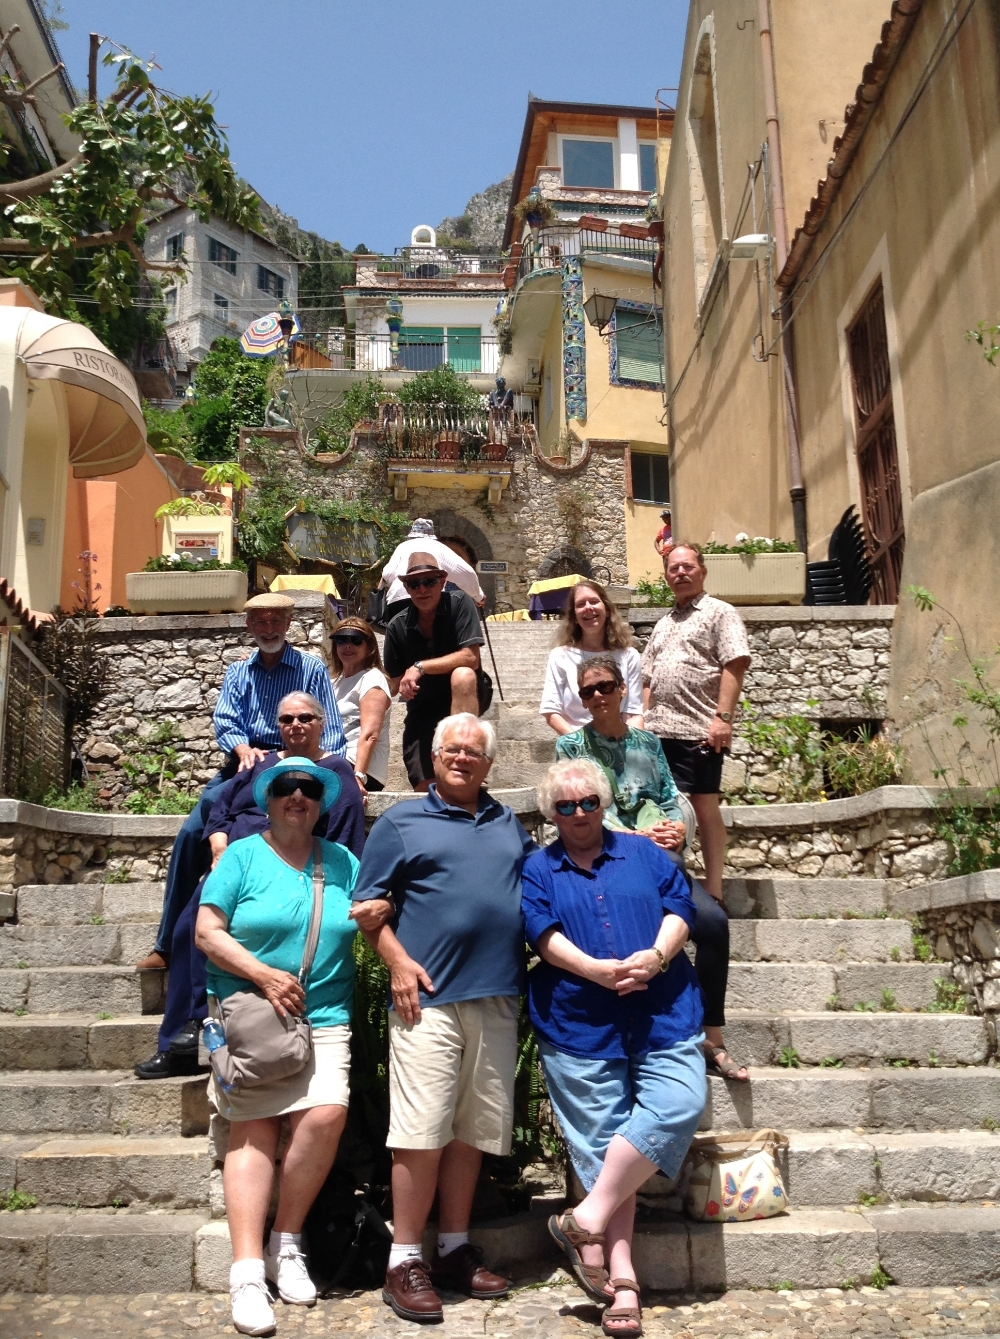 Our final day in taormina